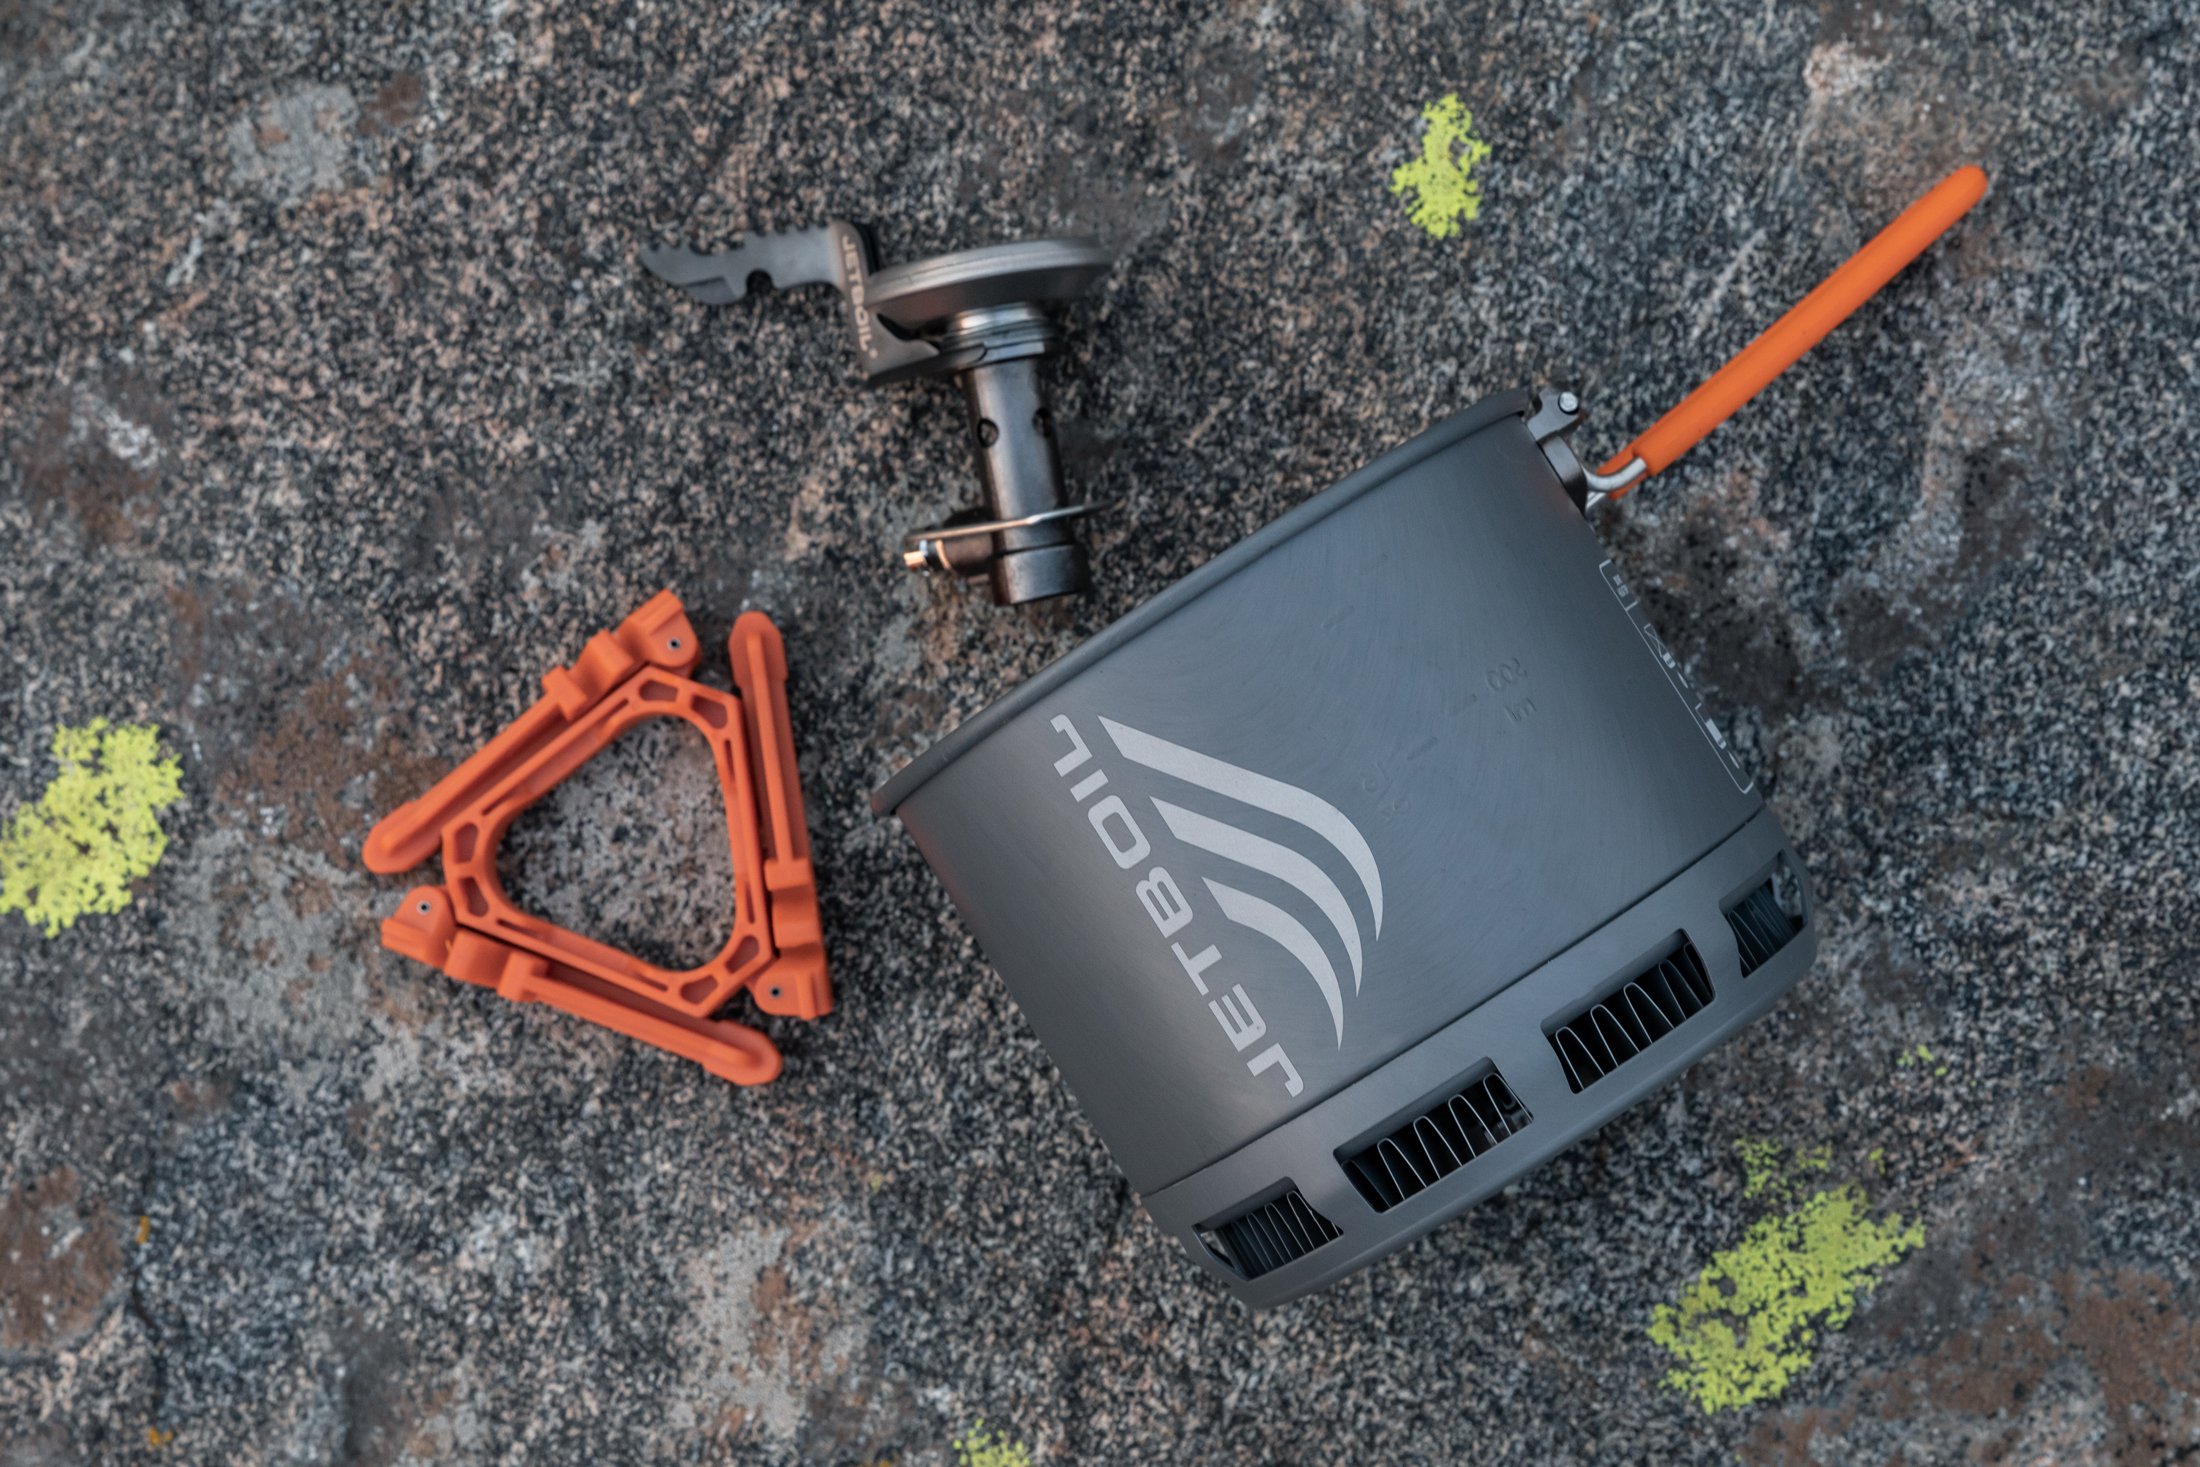 Jetboil Stash backpacking stove